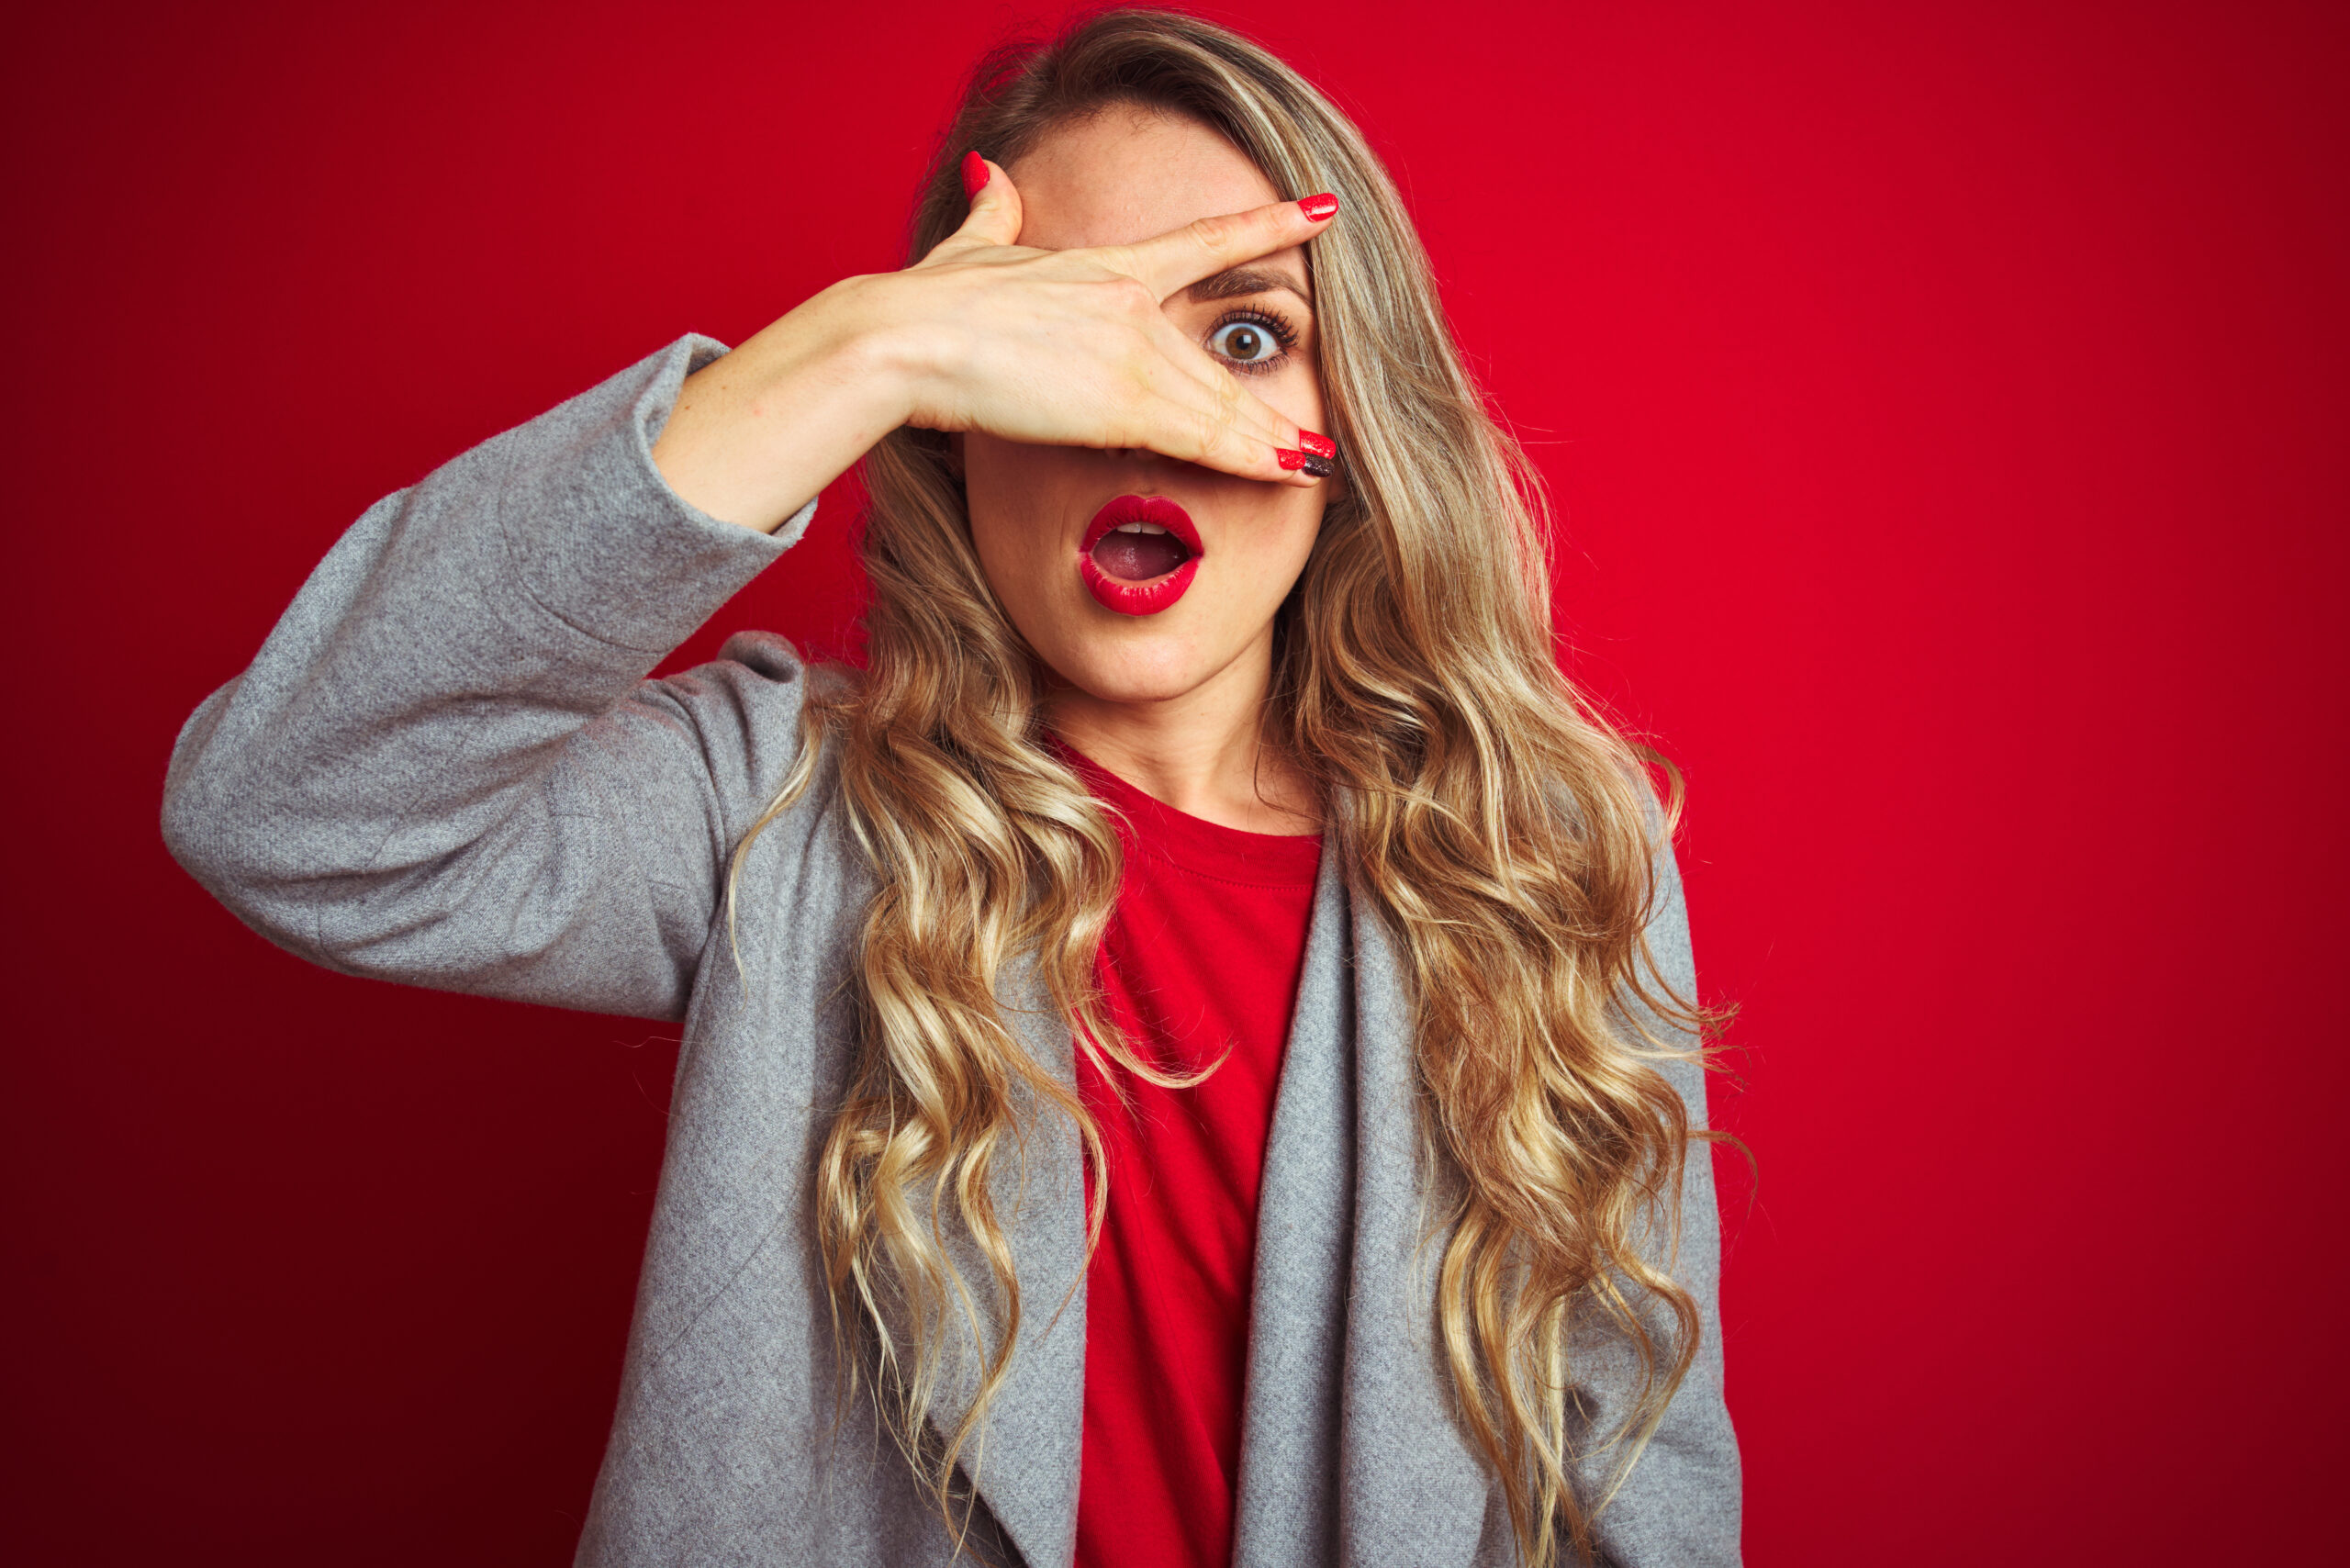 Young beautiful business woman wearing elegant jacket standing over red isolated background peeking in shock covering face and eyes with hand, looking through fingers with embarrassed expression.